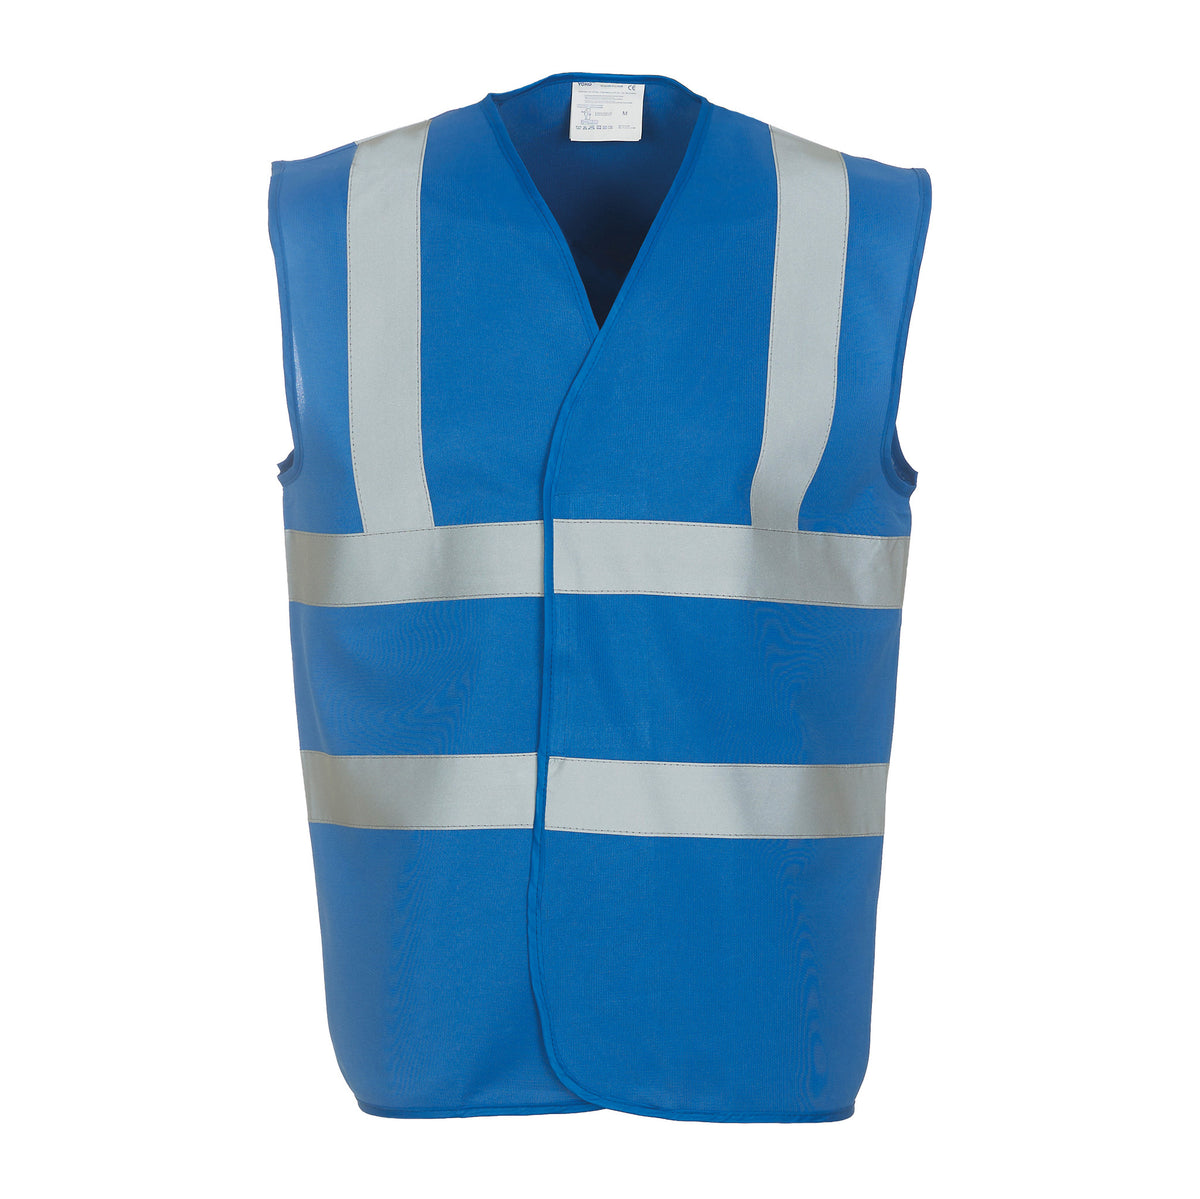 Enhanced Visibility Vest - peterdrew.com  - 6